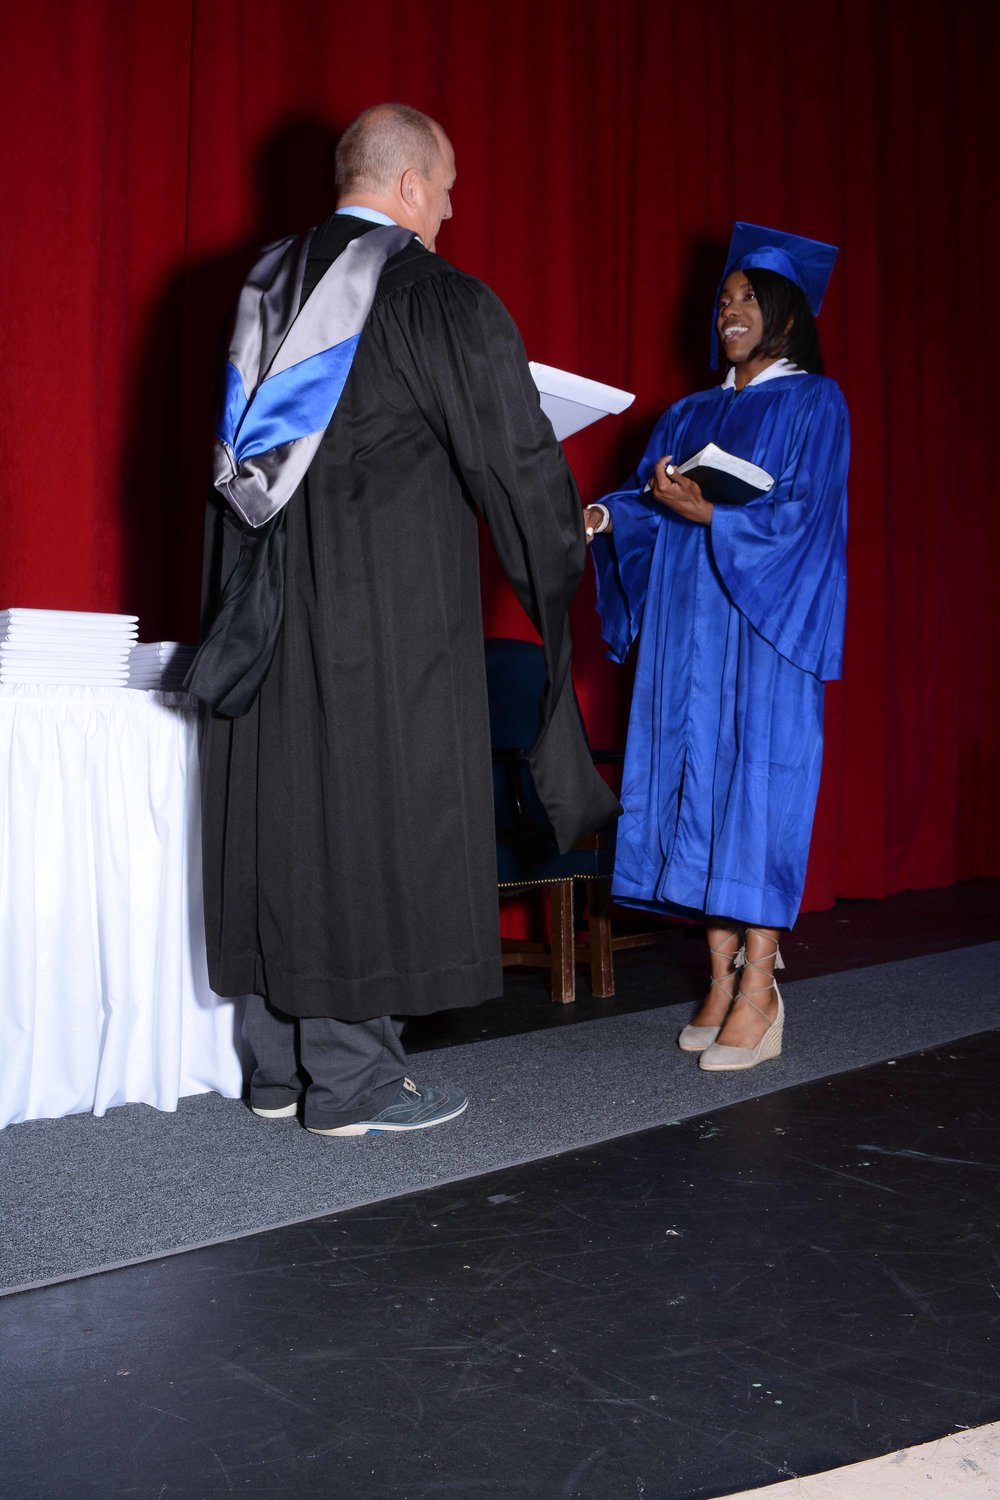 May14 Commencement120.jpg